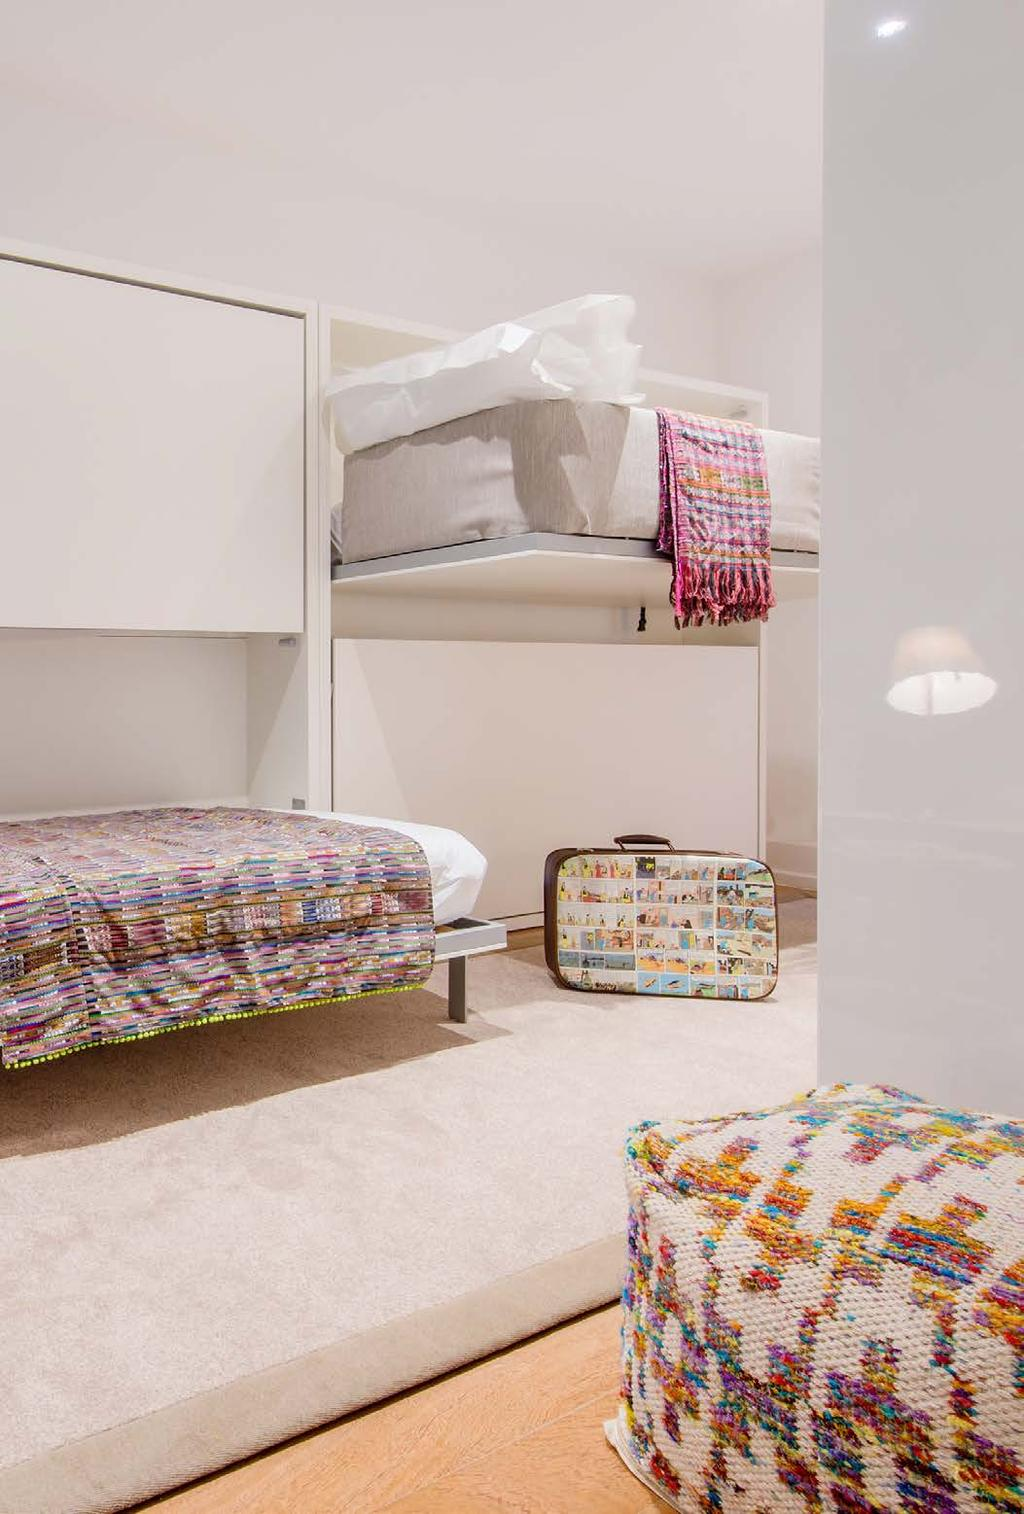 SUPERIOR DELUXE STUDIO with bunkbed In addition to the double bed, the 2 Superior Deluxe Studios offer a stylish bunkbed for children as well as an open